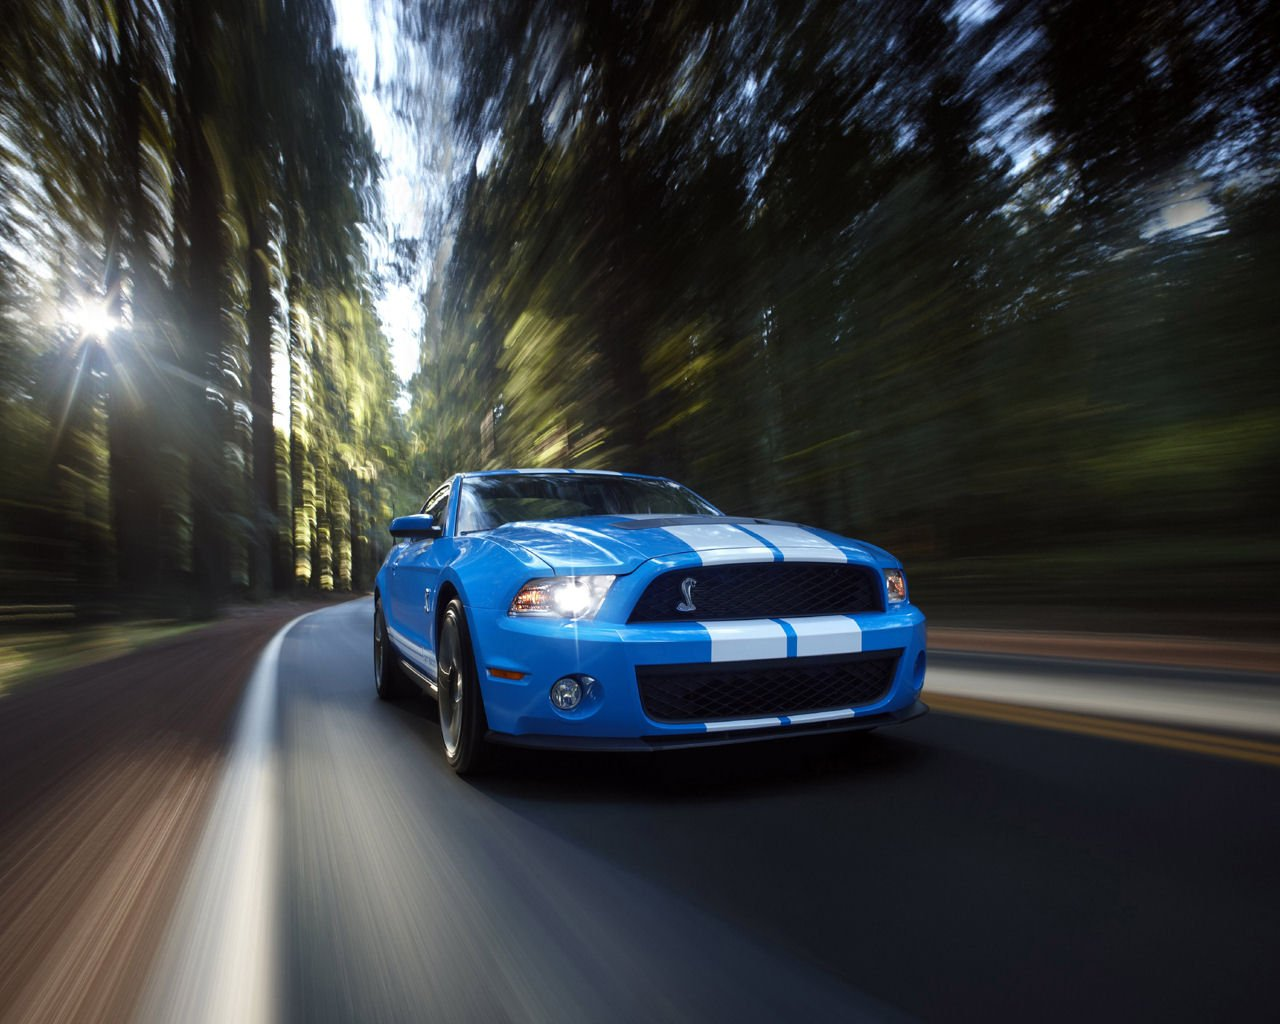 Ford Mustang Desktop Wallpaper 1280x1024